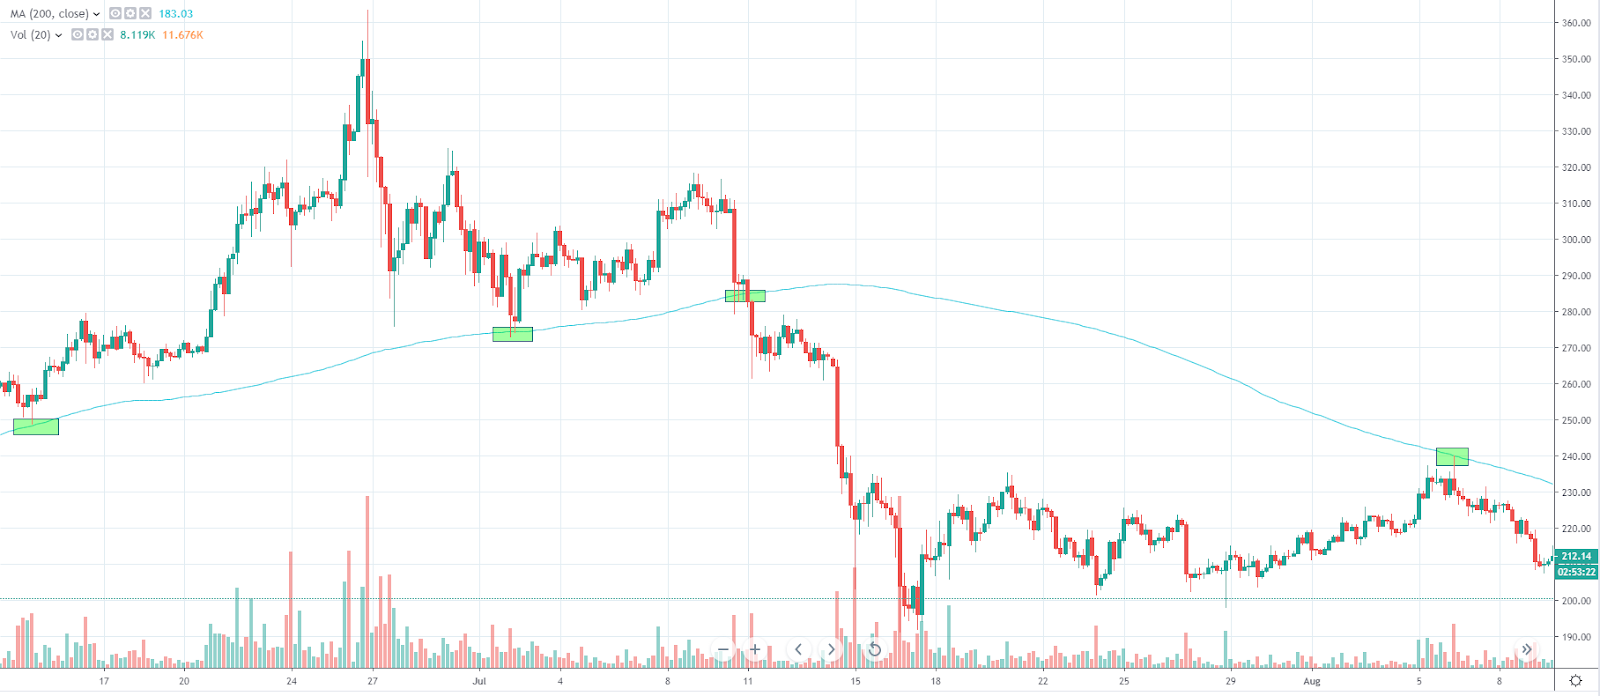 Trading Moving Average Strategy for ETH/USD